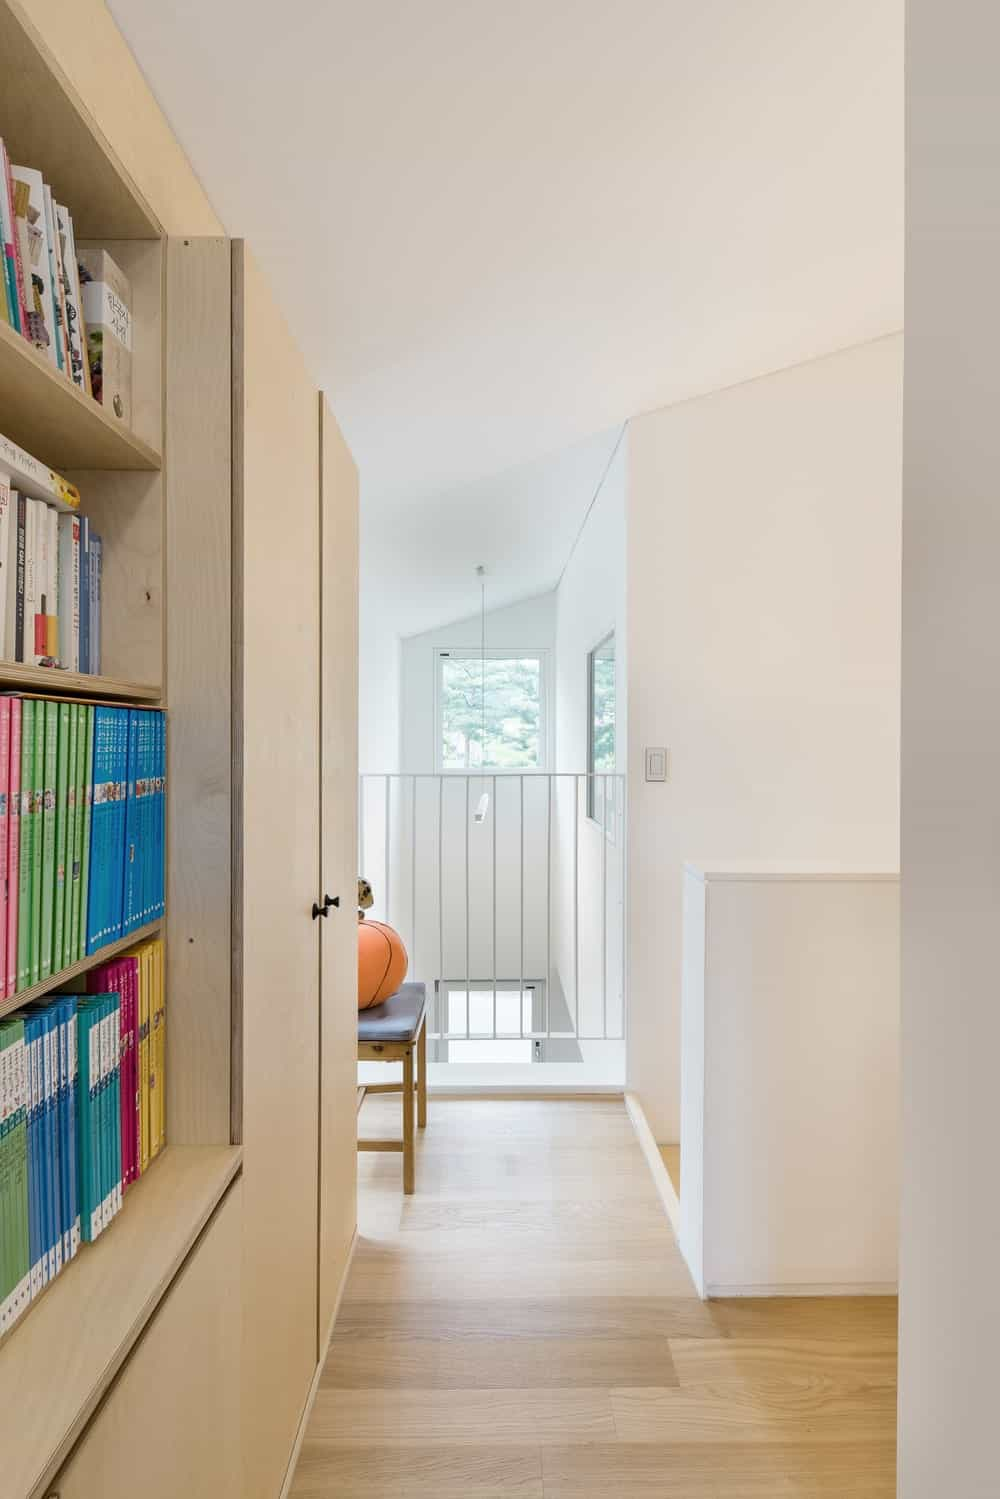 This is the library of the house with a alrge wooden built-in bookshelf lining the wall with cabinets on the far side matching the tone of the light hardwood flooring.